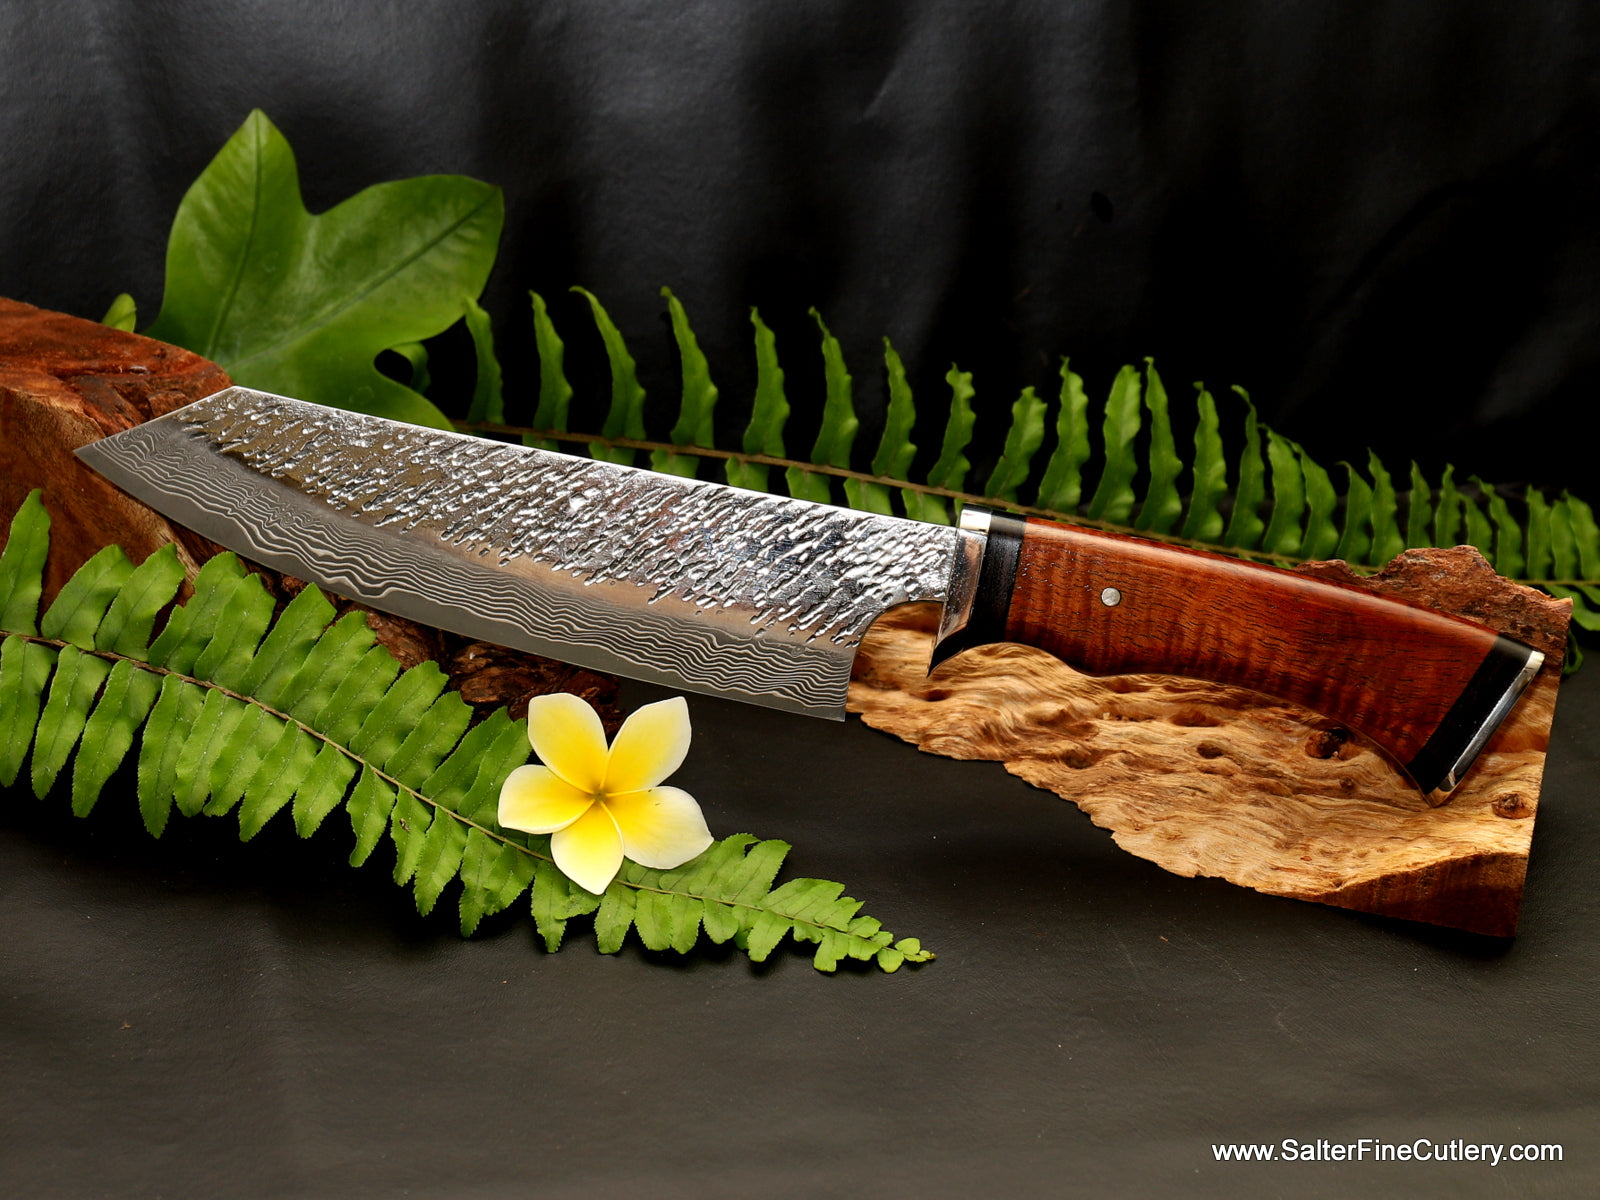 Salter Fine Cutlery handmade Raptor series vegetable and meat knife with stainless steel and ebony accents and rare Hawaiian curly koa wood handle